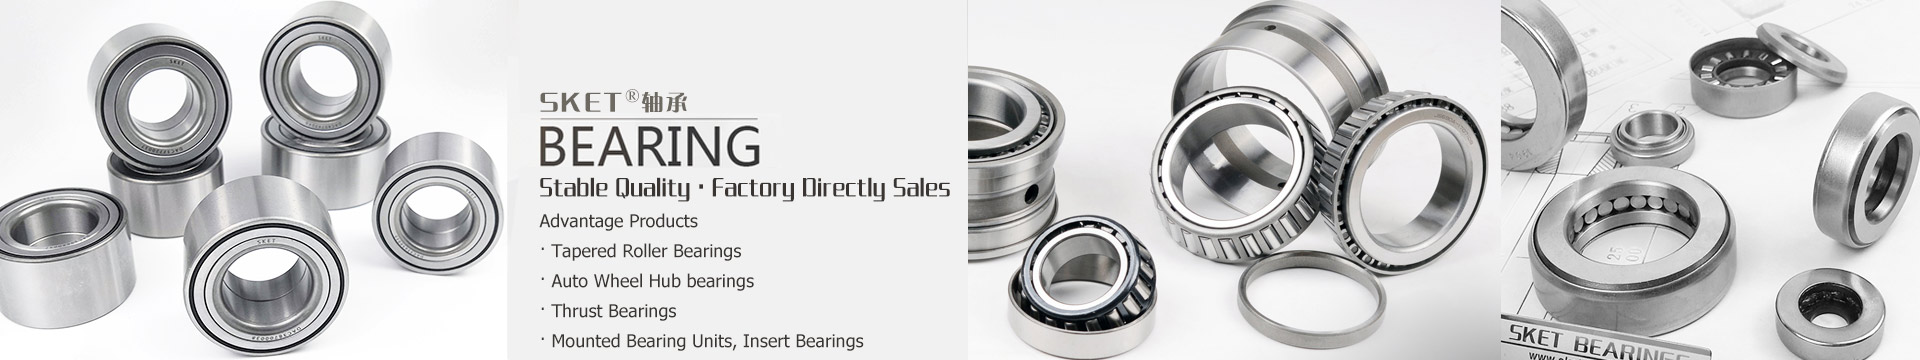 Tapered Roller Bearings · Kingpin Thrust Bearing · Pillow Block Bearings Units · Deep Groove Ball Bearings